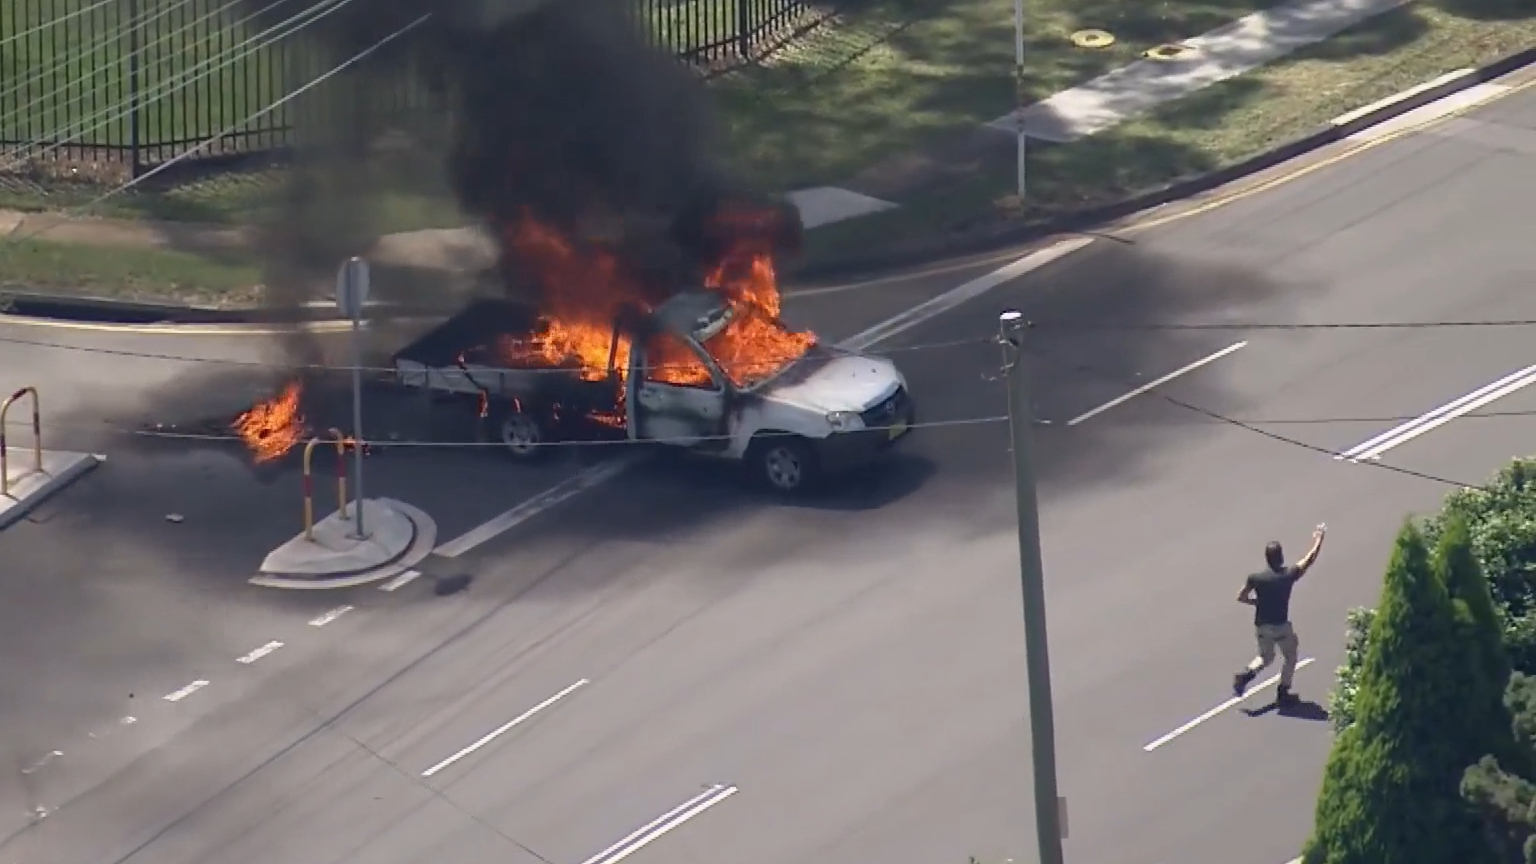 Ute engulfed by flames in Sydney's south west